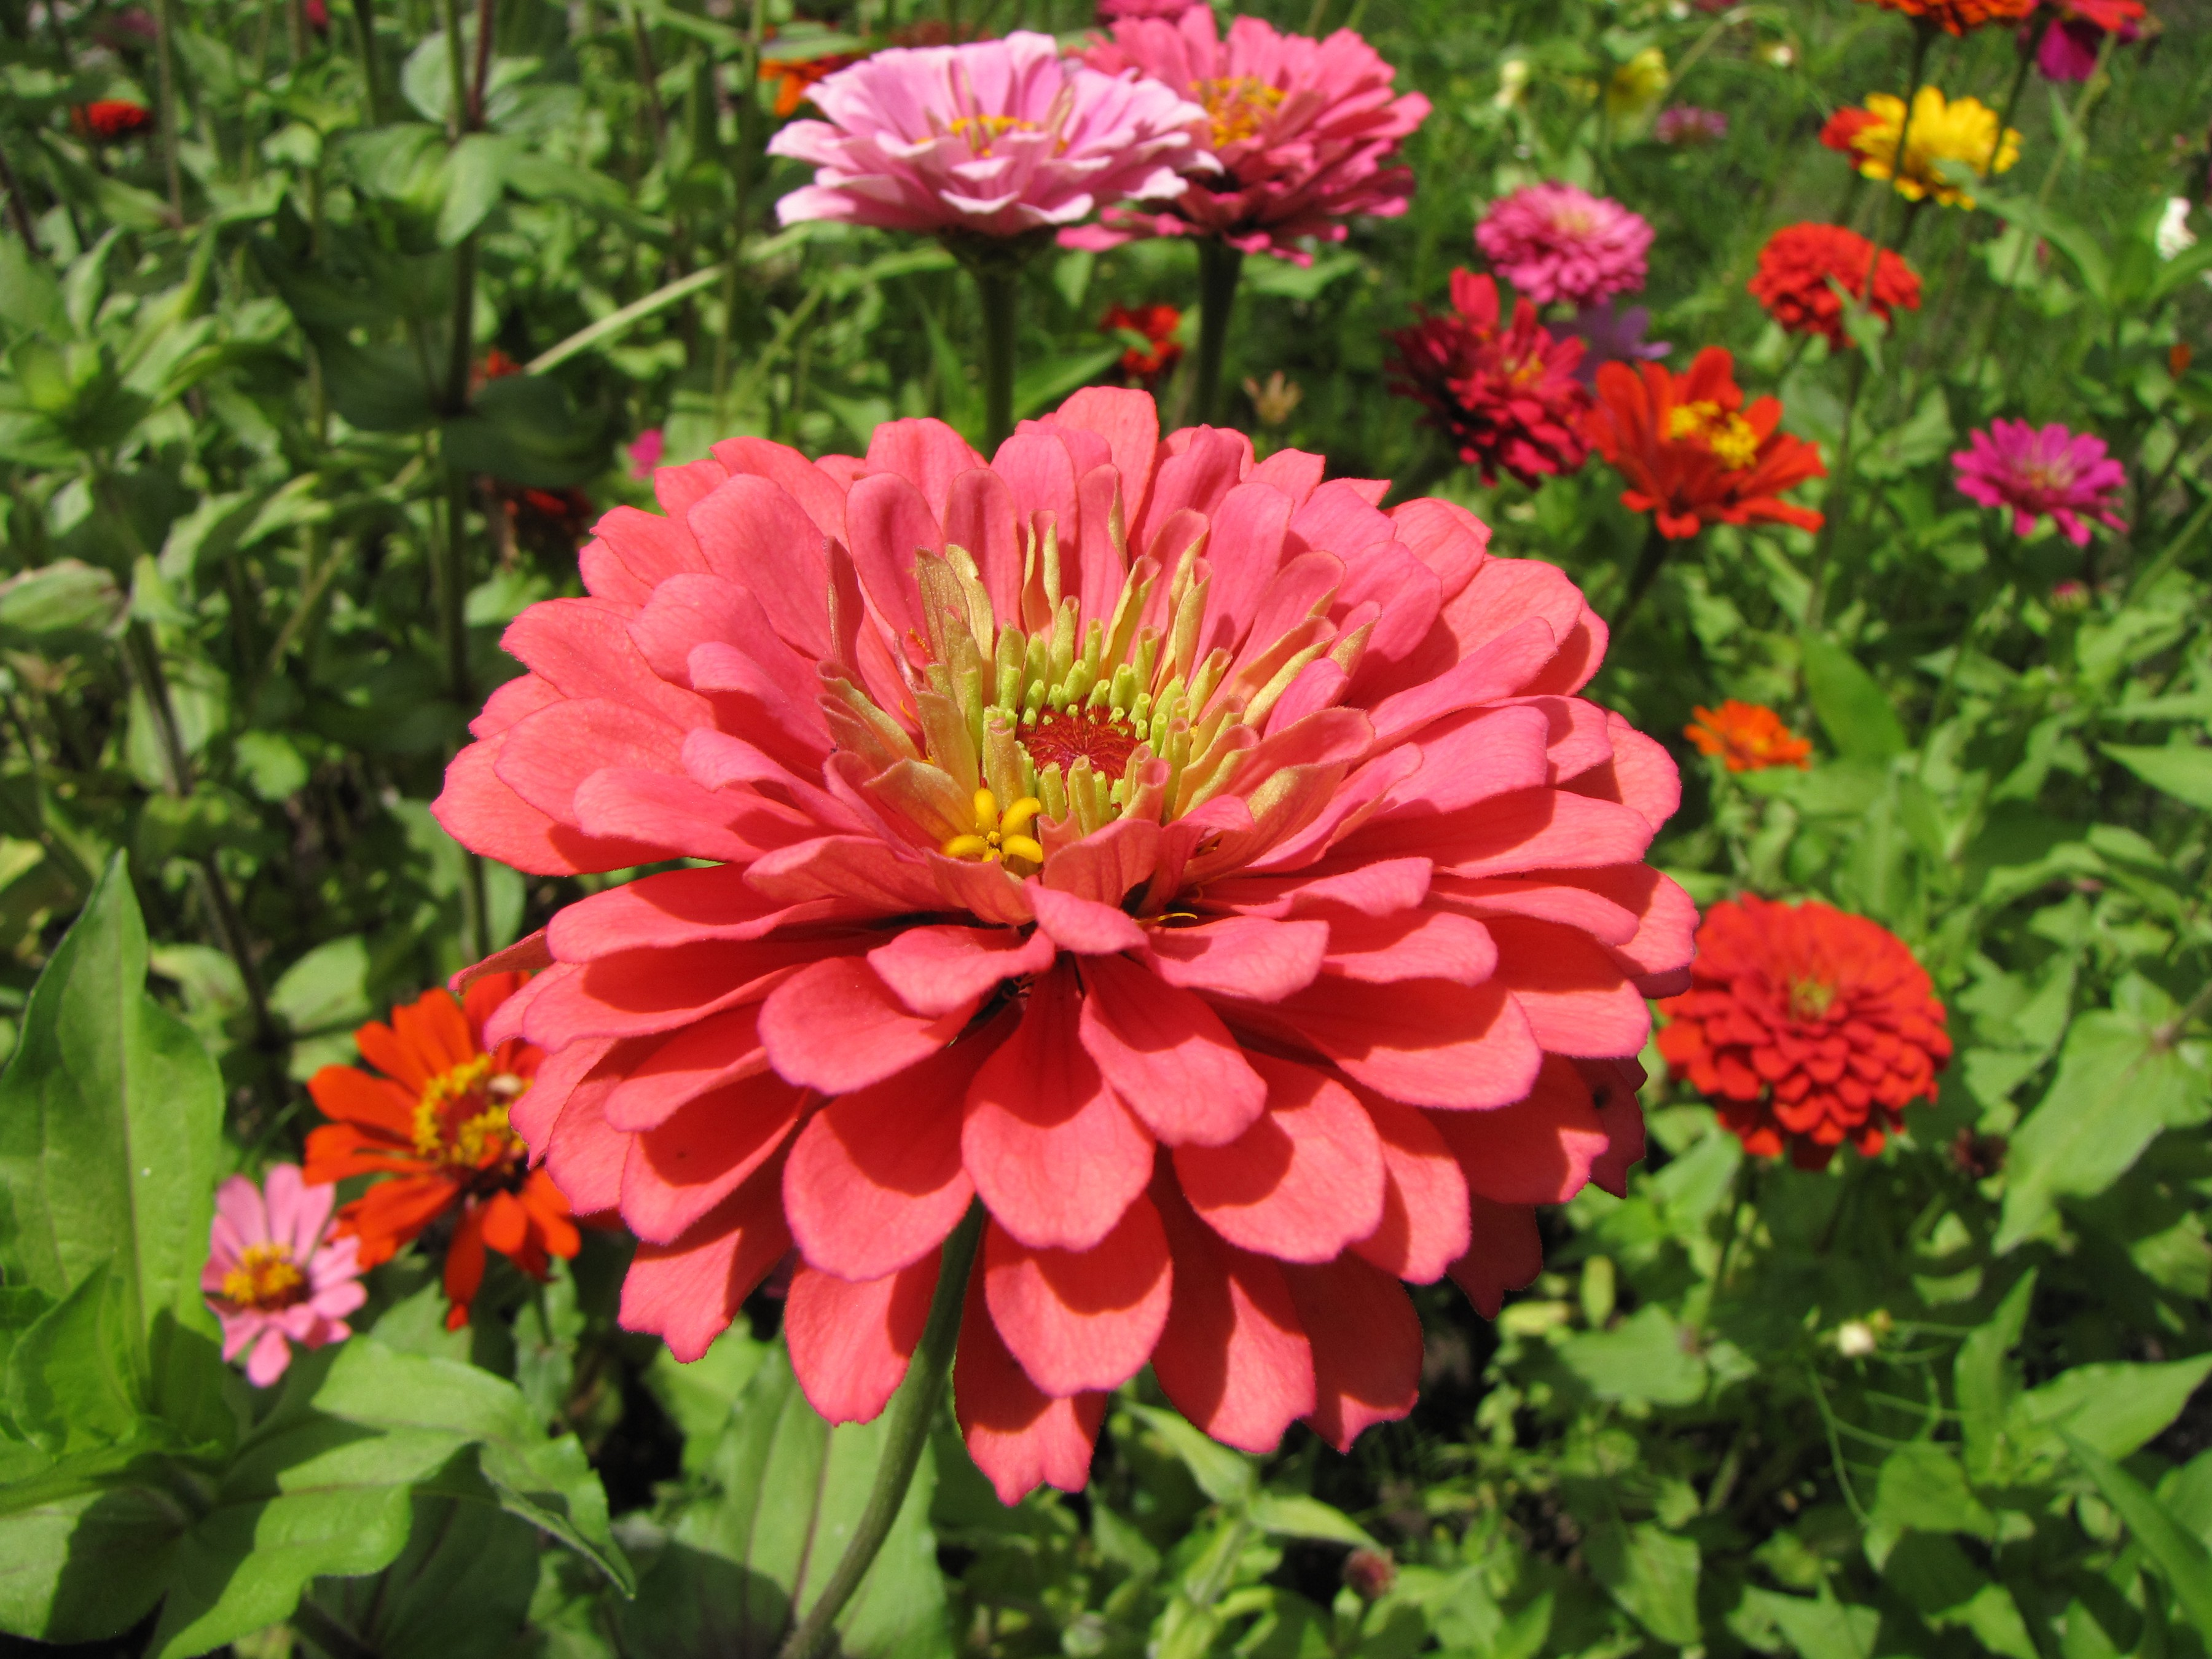 https://upload.wikimedia.org/wikipedia/commons/3/3a/Zinnia_elegans_(pink).jpg